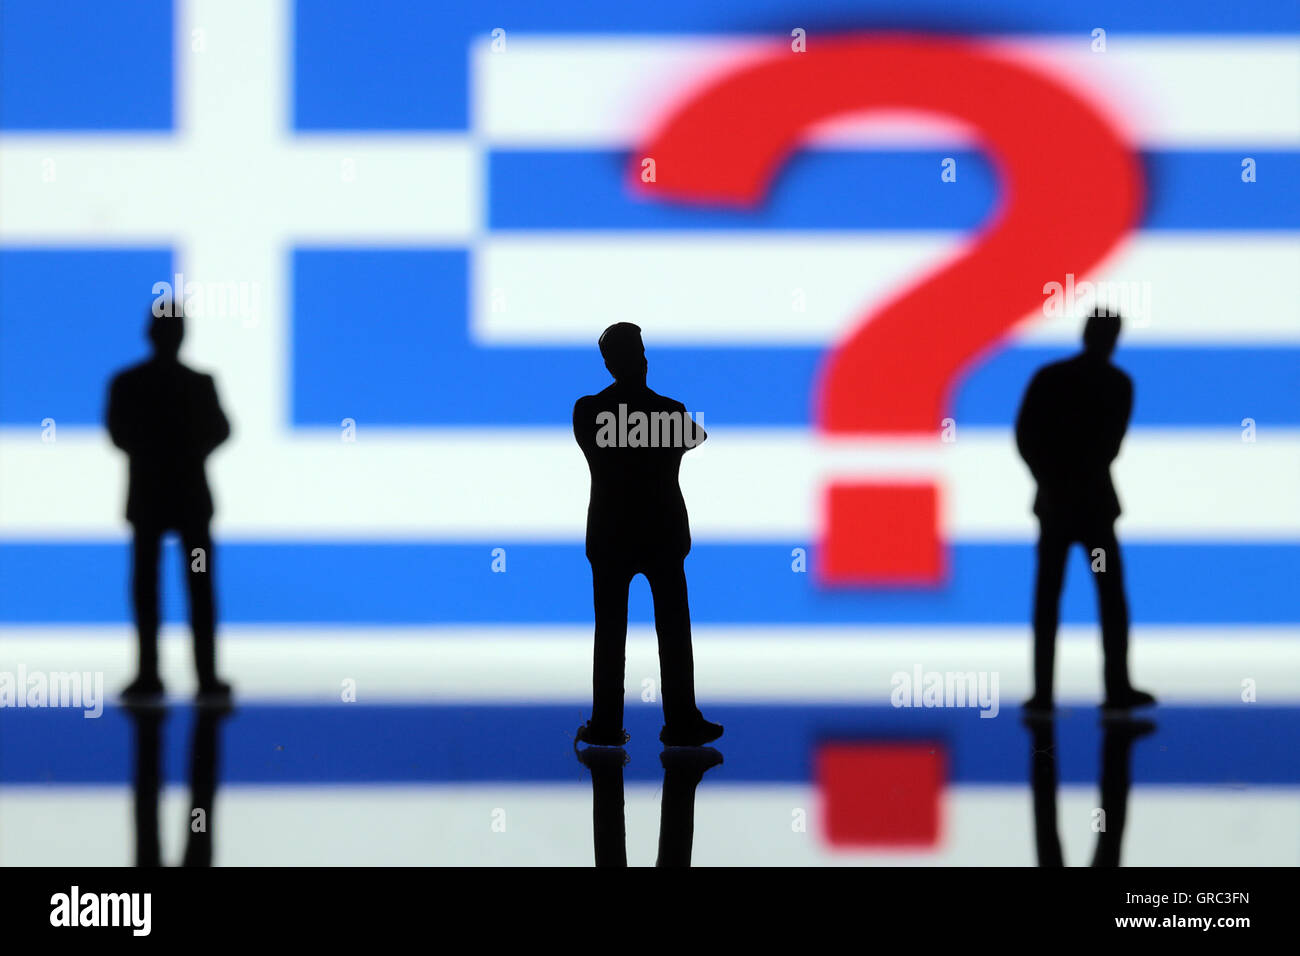 Manager With Question Mark And Greek Flag - Stock Image